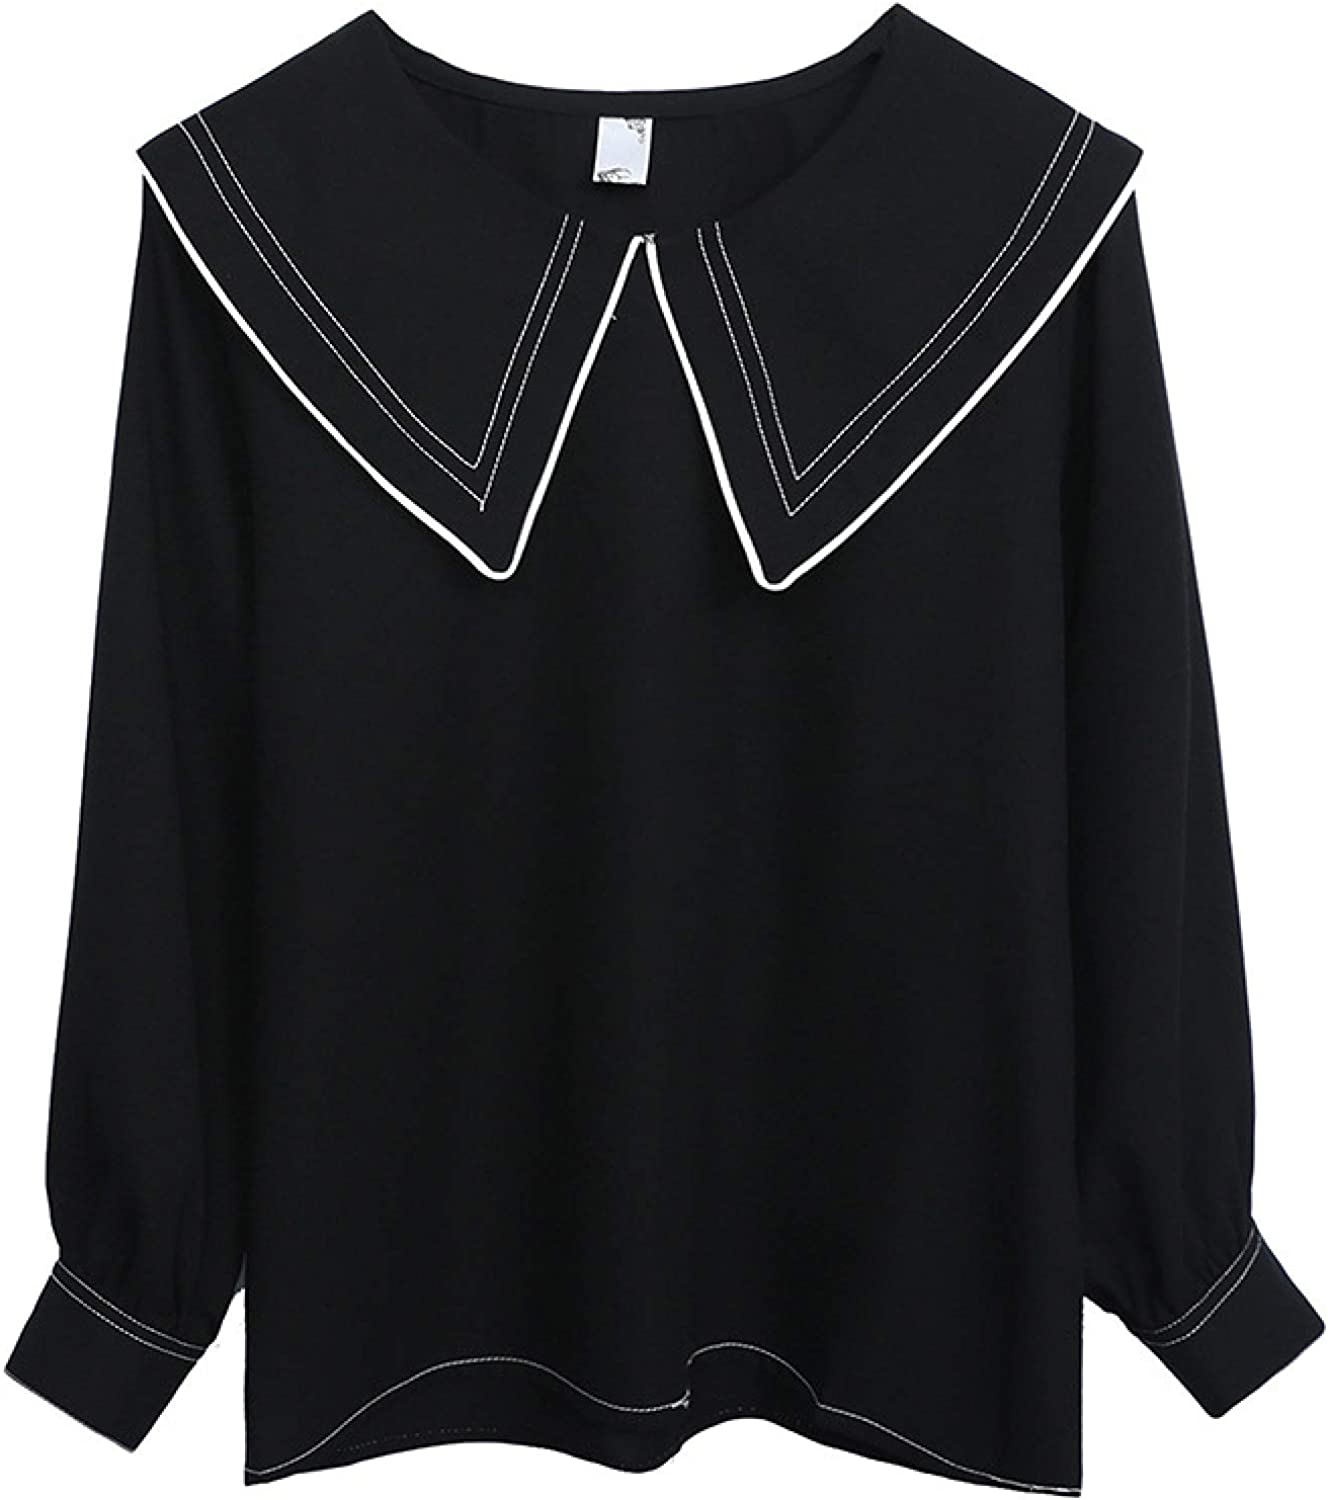 Ladies Very popular Spring Tops Fashion Simple Rapid rise Style Lo Round Retro Neck Thin